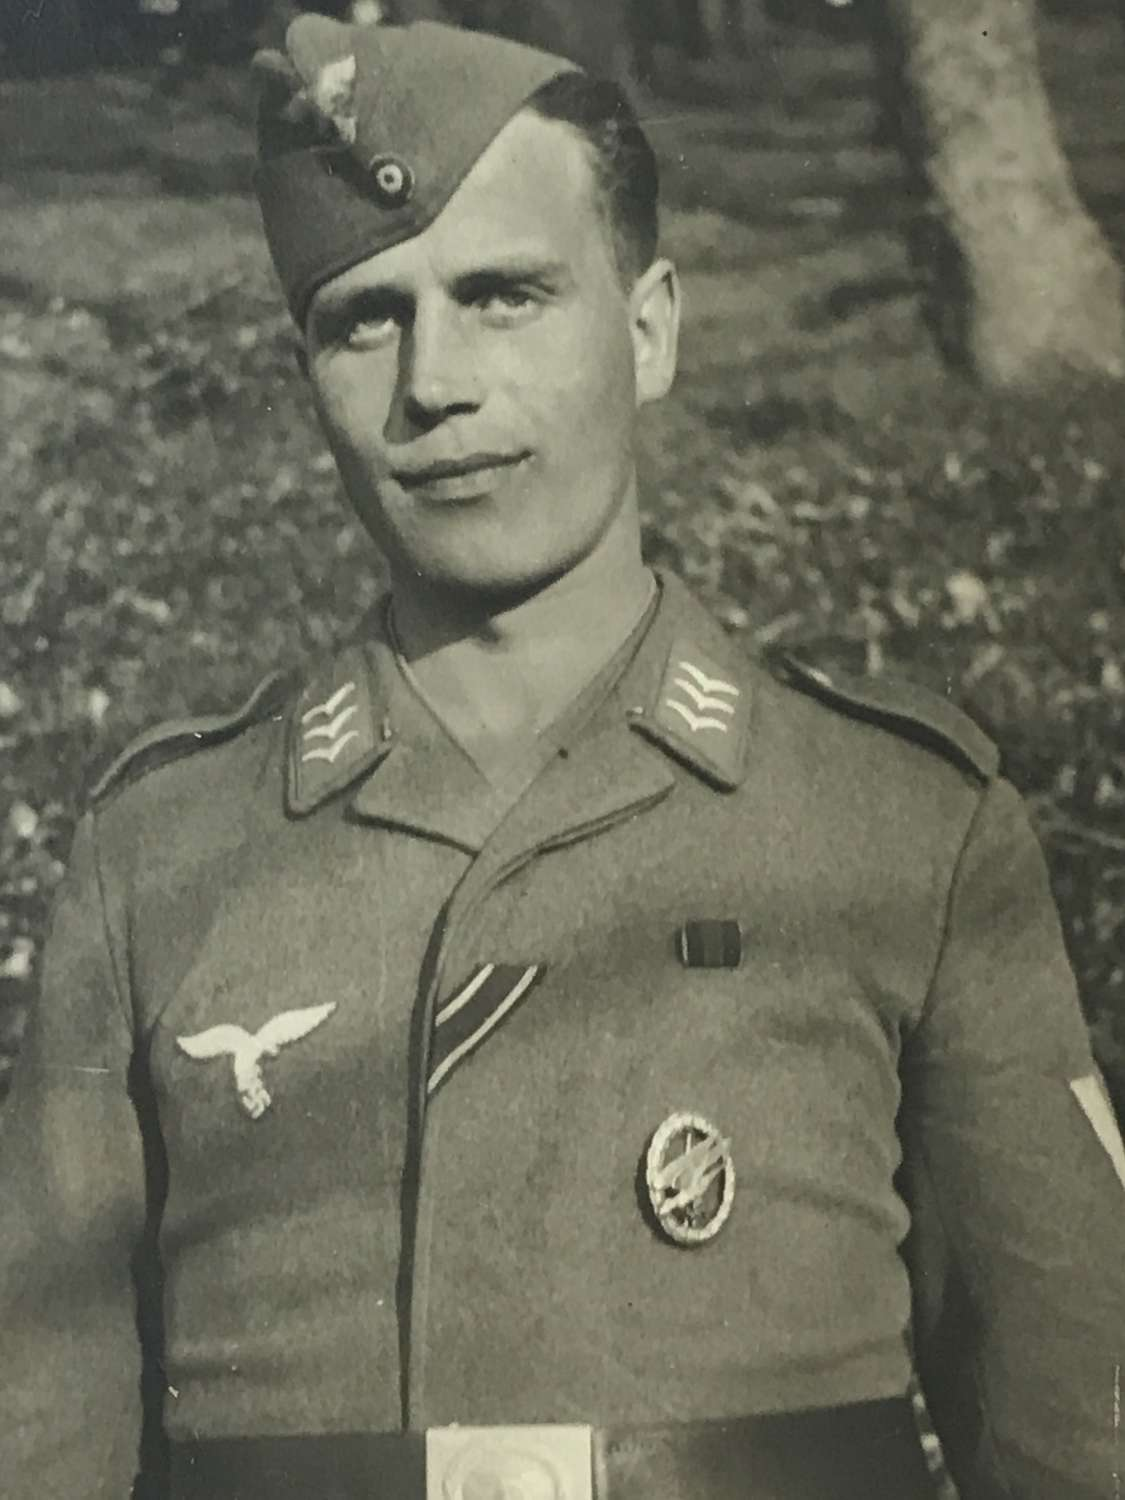 Portrait photo of a Fallschirmjager